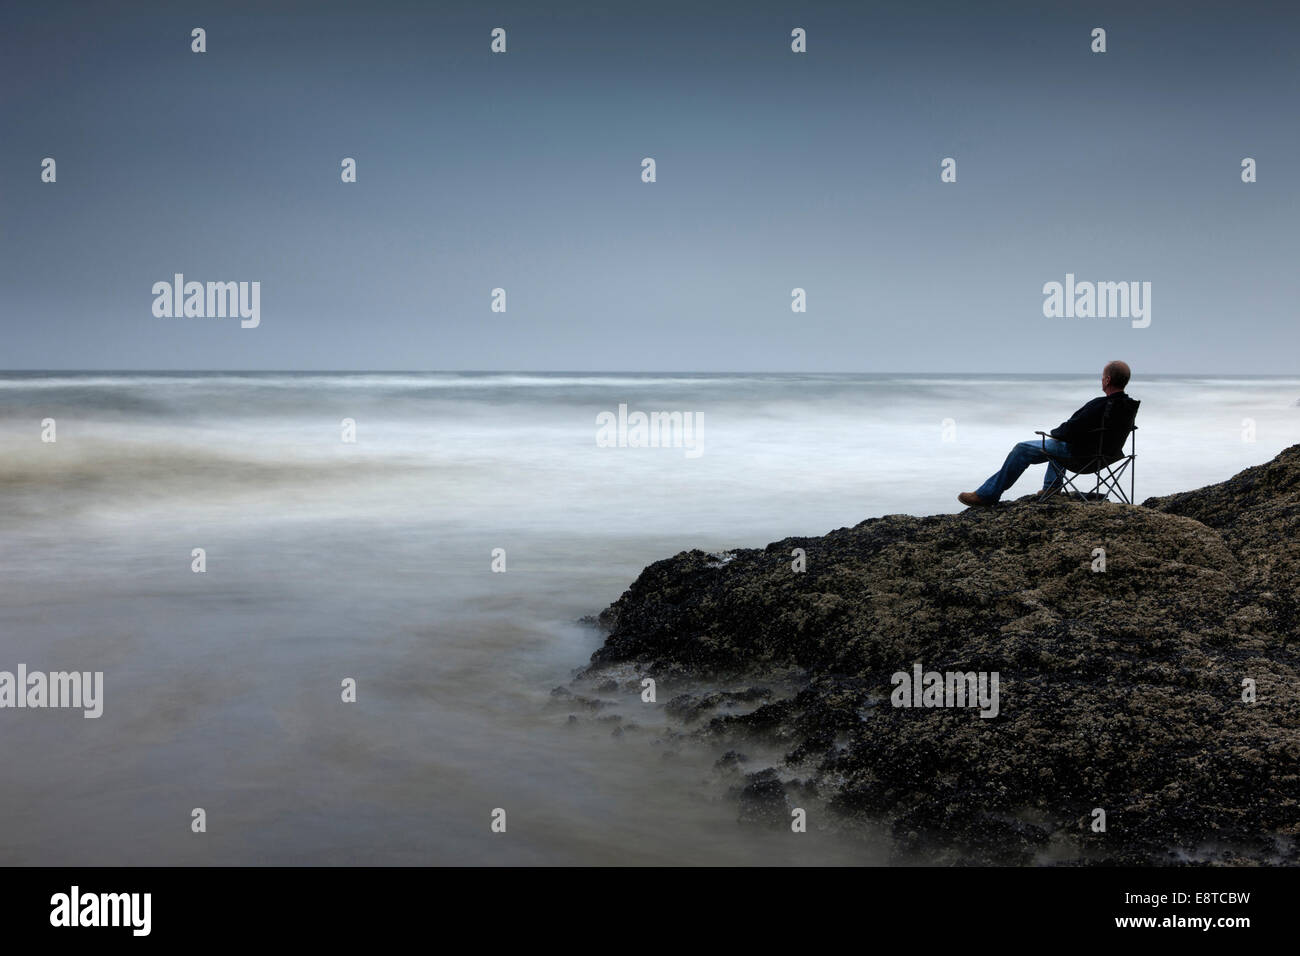 Man in Chair donnant sur les vagues on Rocky beach Photo Stock